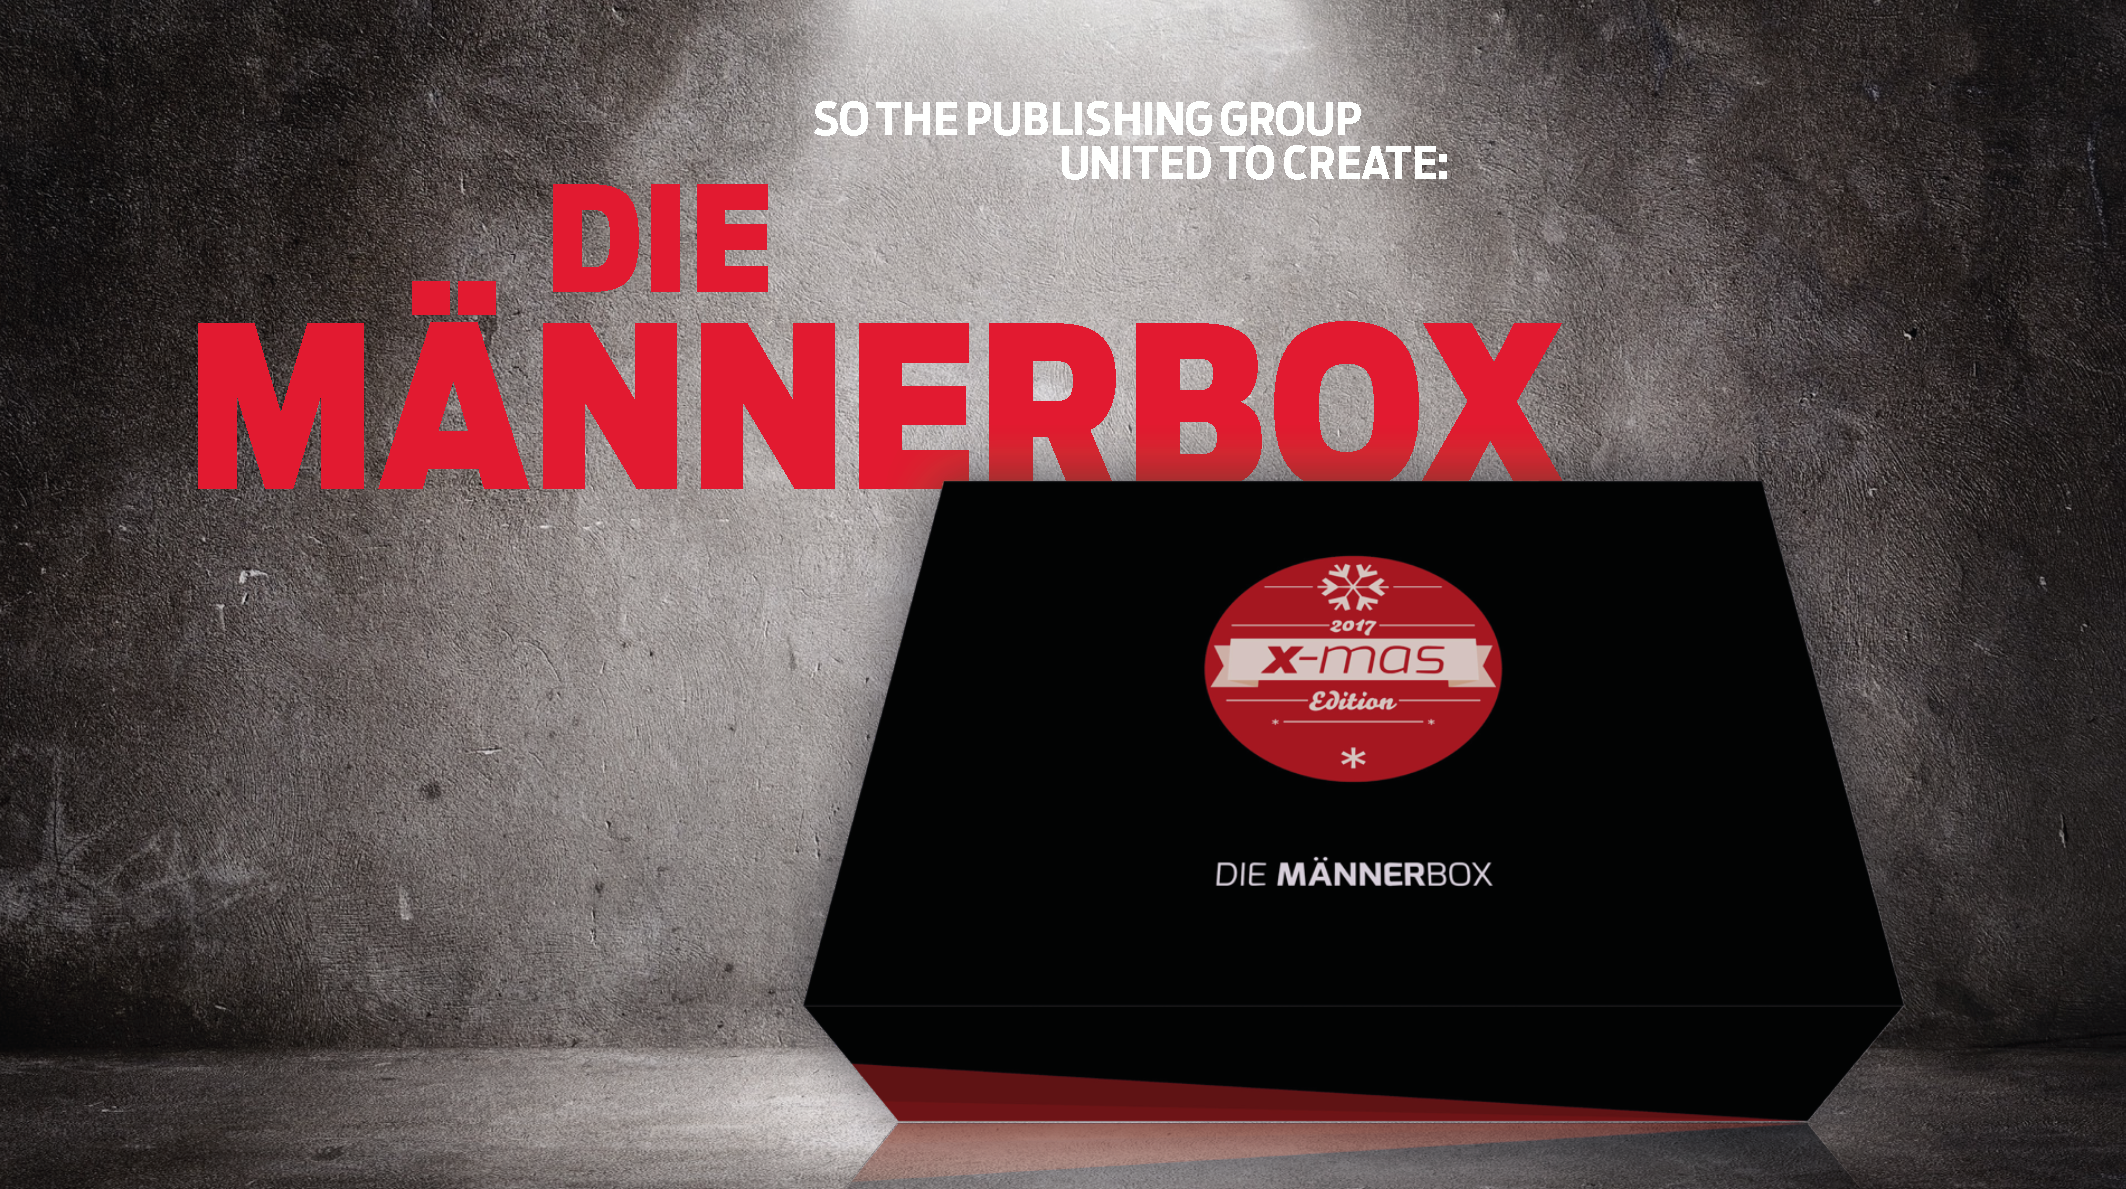 The MÄNNERbox